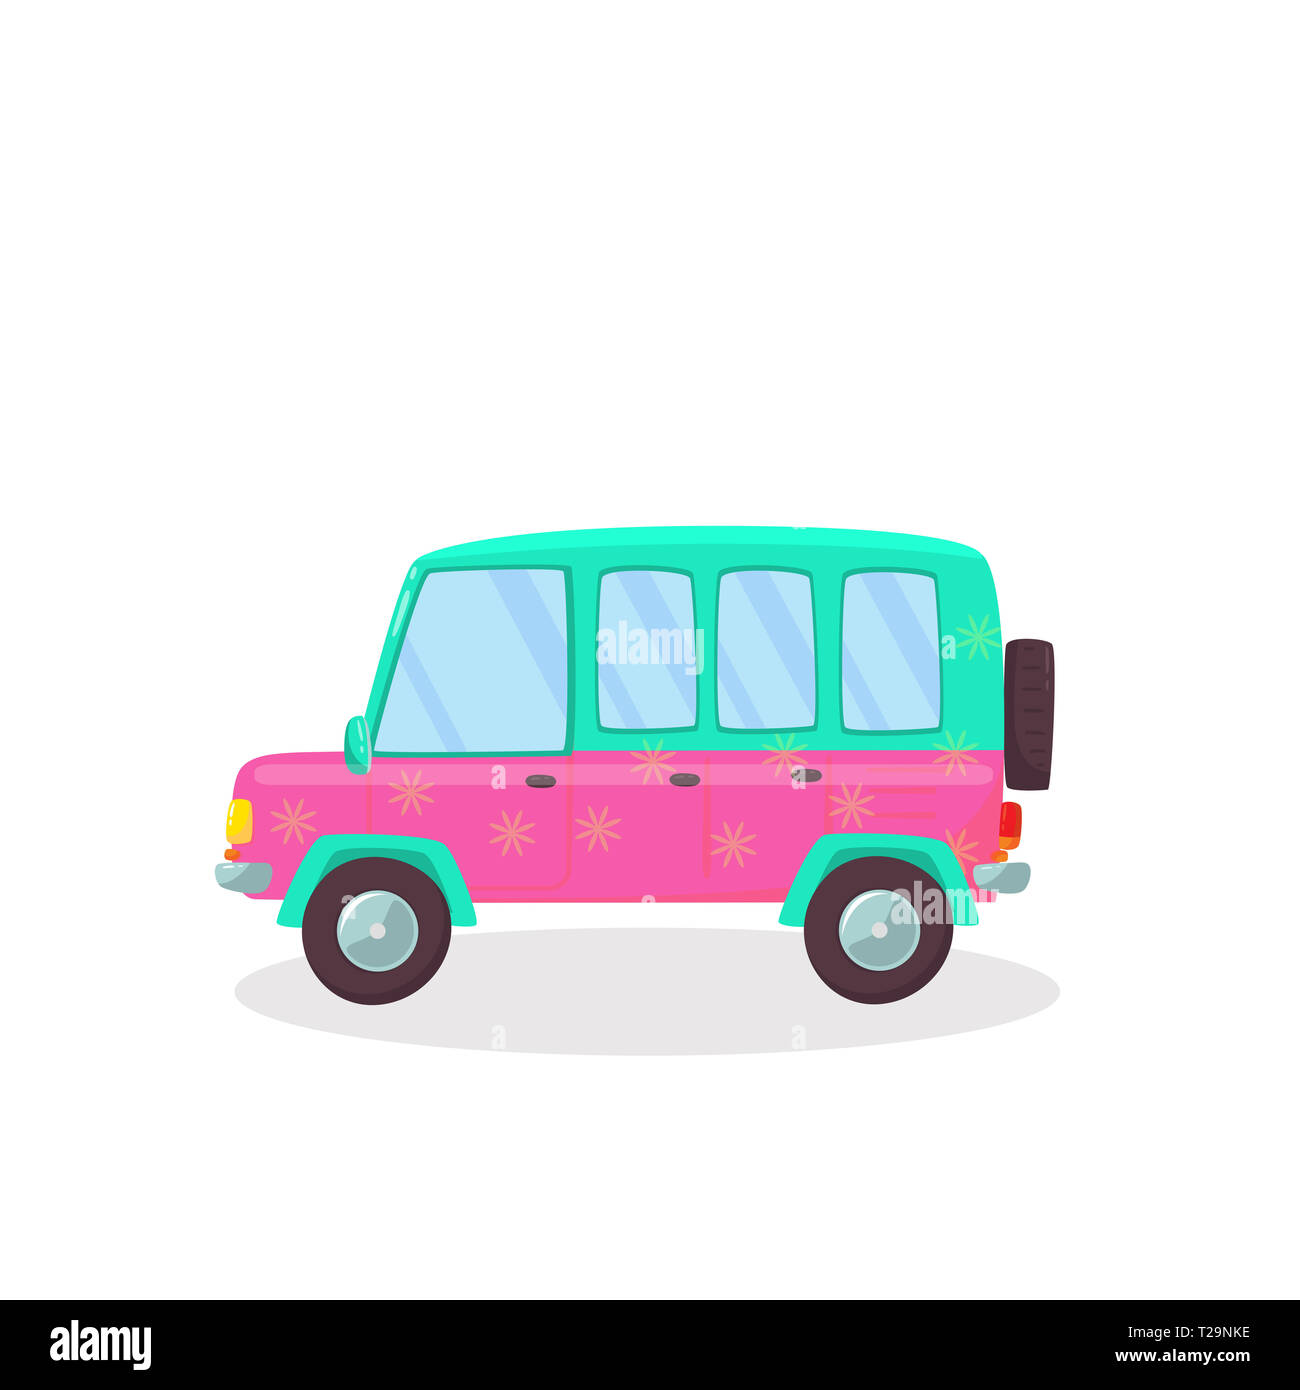 Pink , Green Colored Modern Car with Flowers Pattern Isolated on White Background. Side View of Comfortable Hatchback Automobile for Family Traveling. - Stock Image